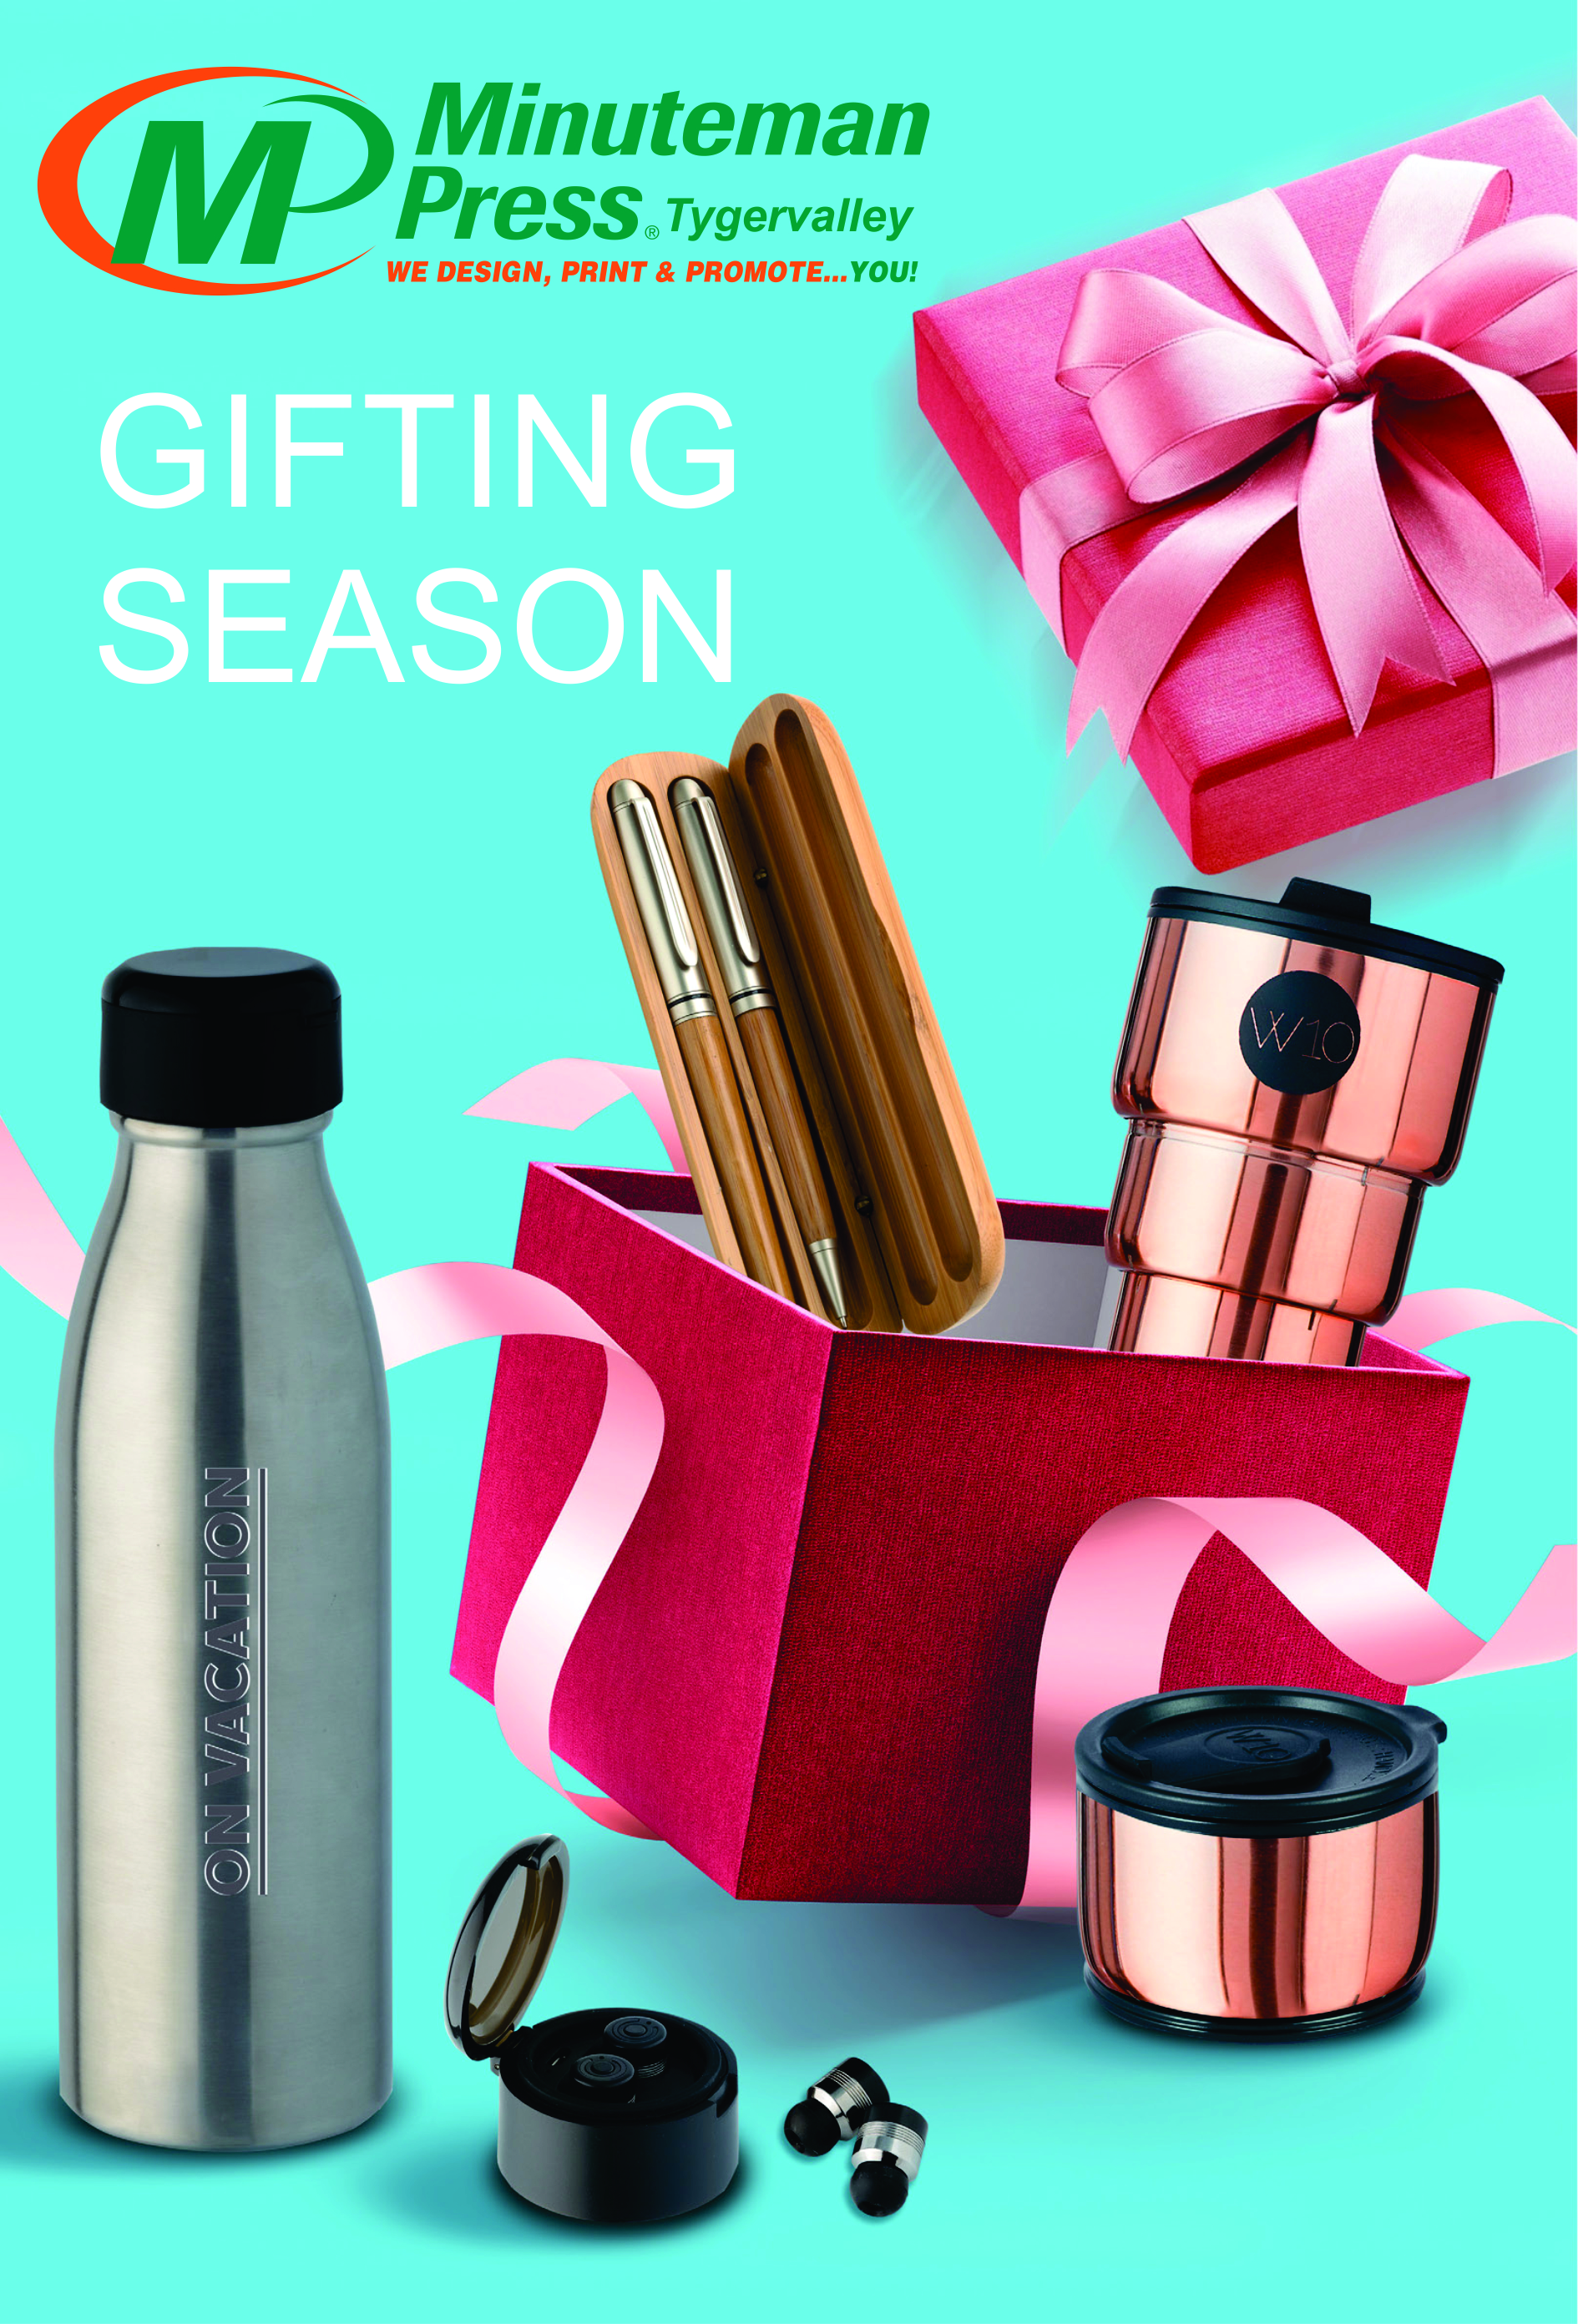 Special gifting options